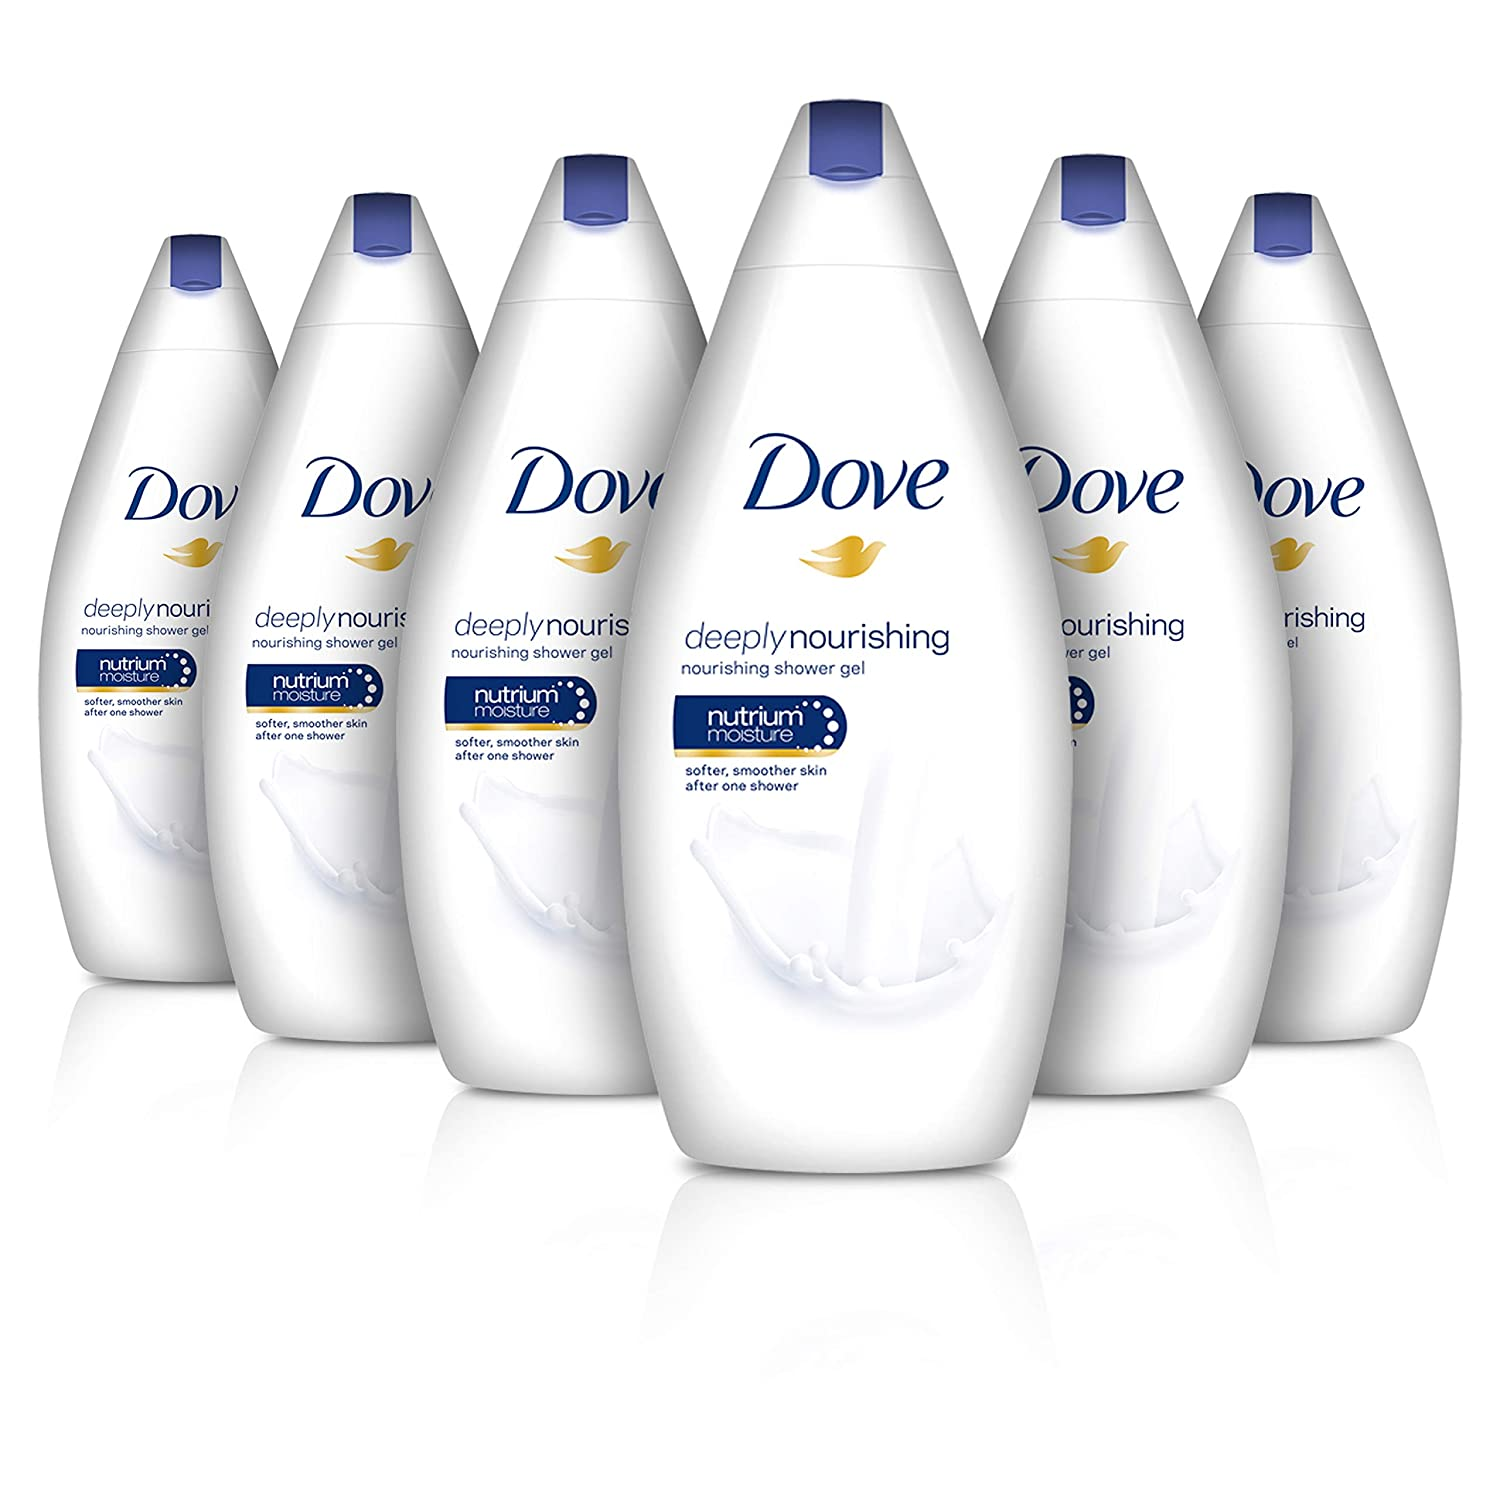 Dove Deep Moisture Deeply Nourishing Body Wash 500ml Pack of 6